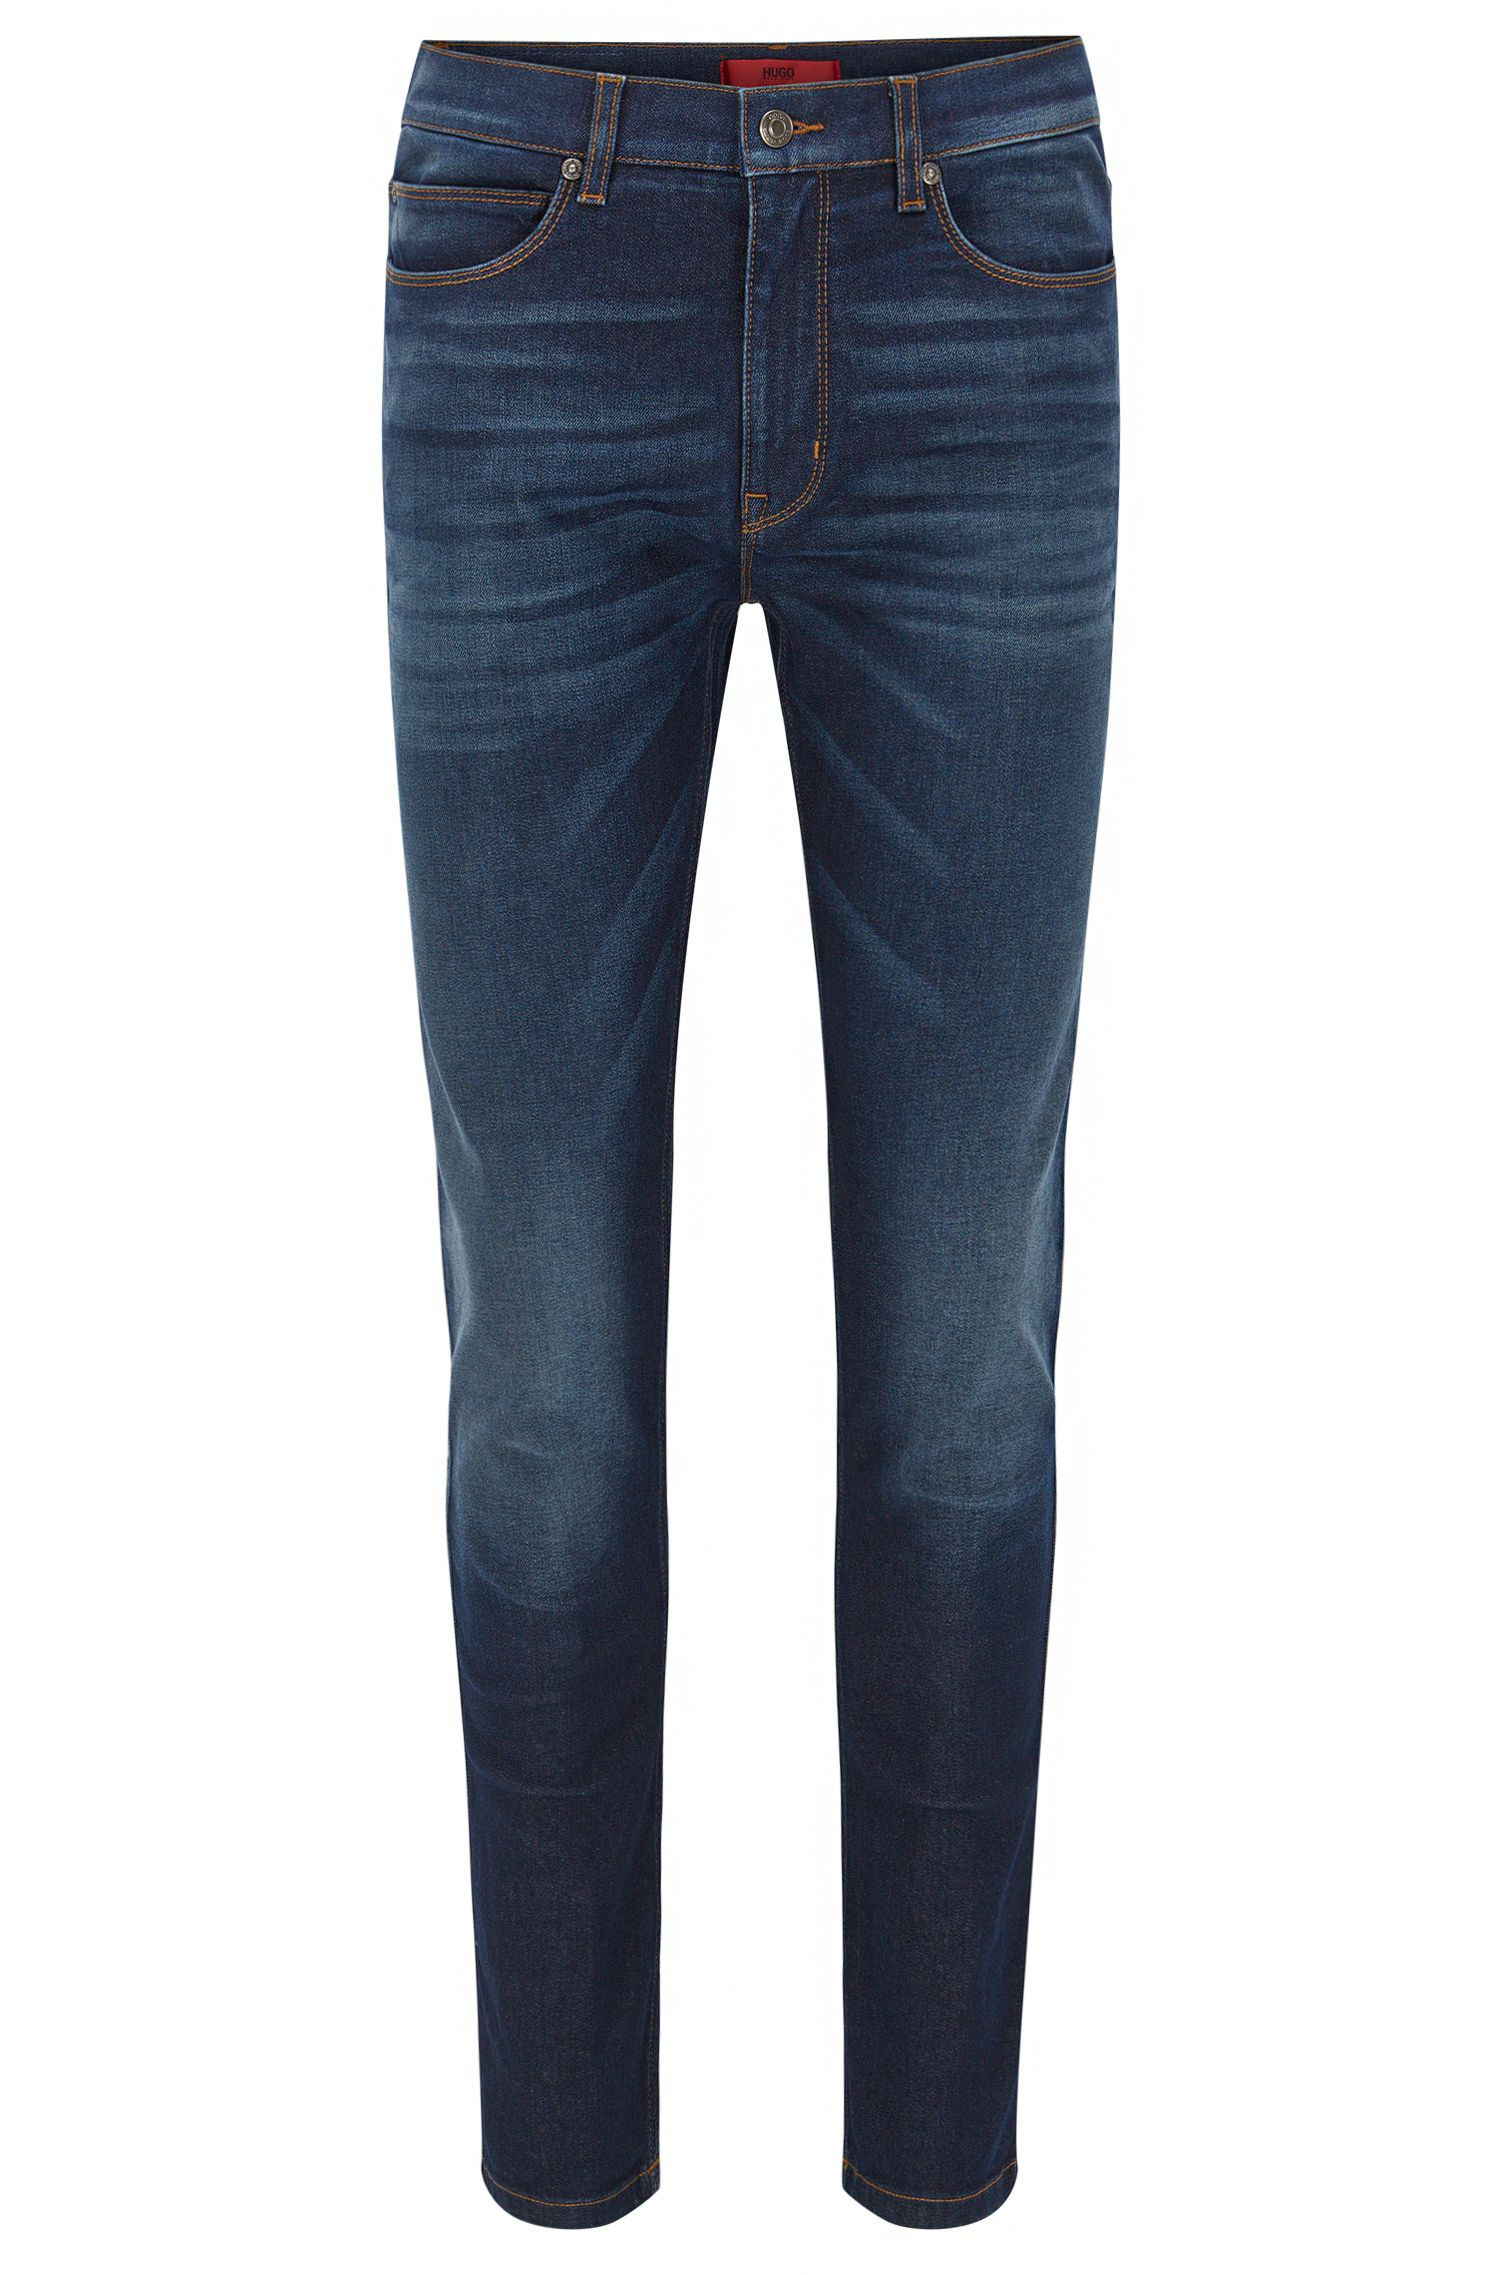 Skinny-fit stone-washed blue jeans in stretch denim